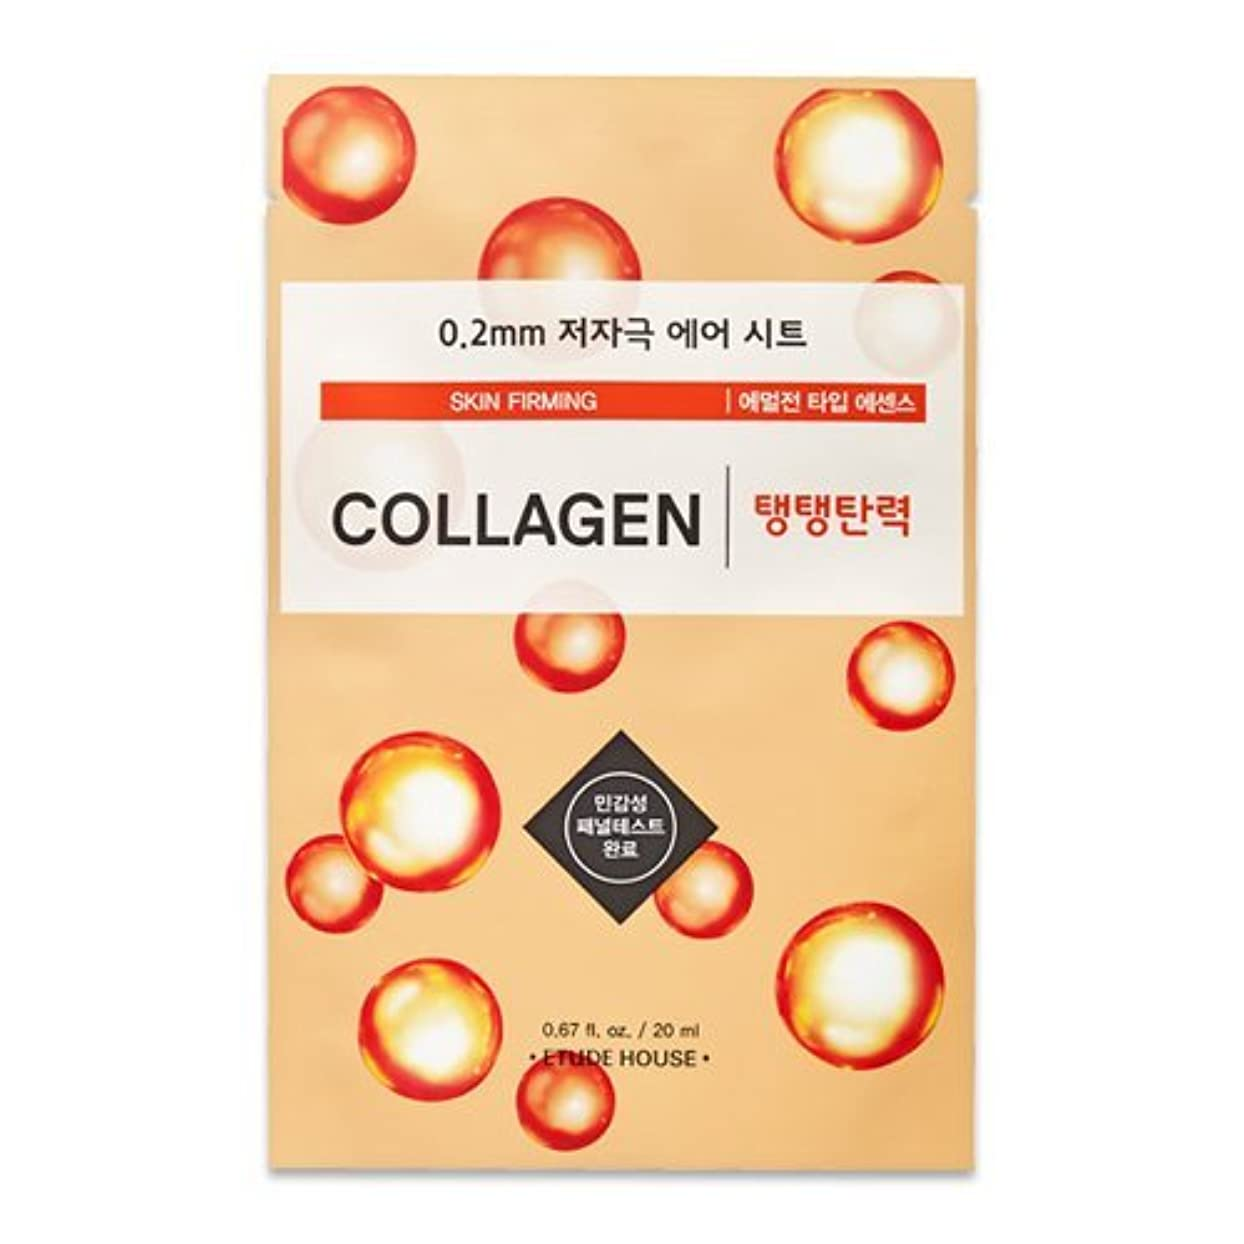 ETUDE HOUSE 0.2 Therapy Air Mask 20ml×10ea (#12 Collagen)/エチュードハウス 0.2 セラピー エア マスク 20ml×10枚 (#12 Collagen)